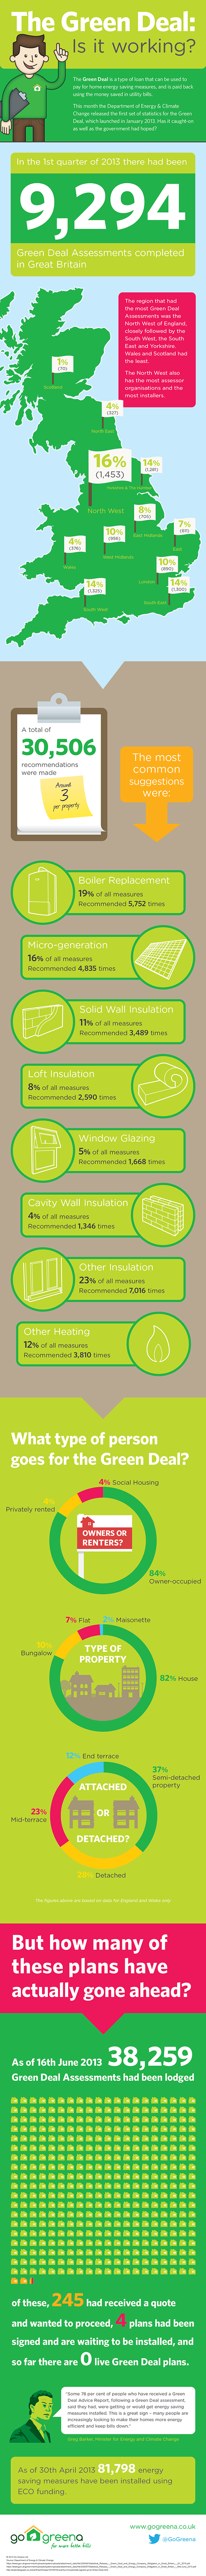 Green Deal infographic from Go Greena